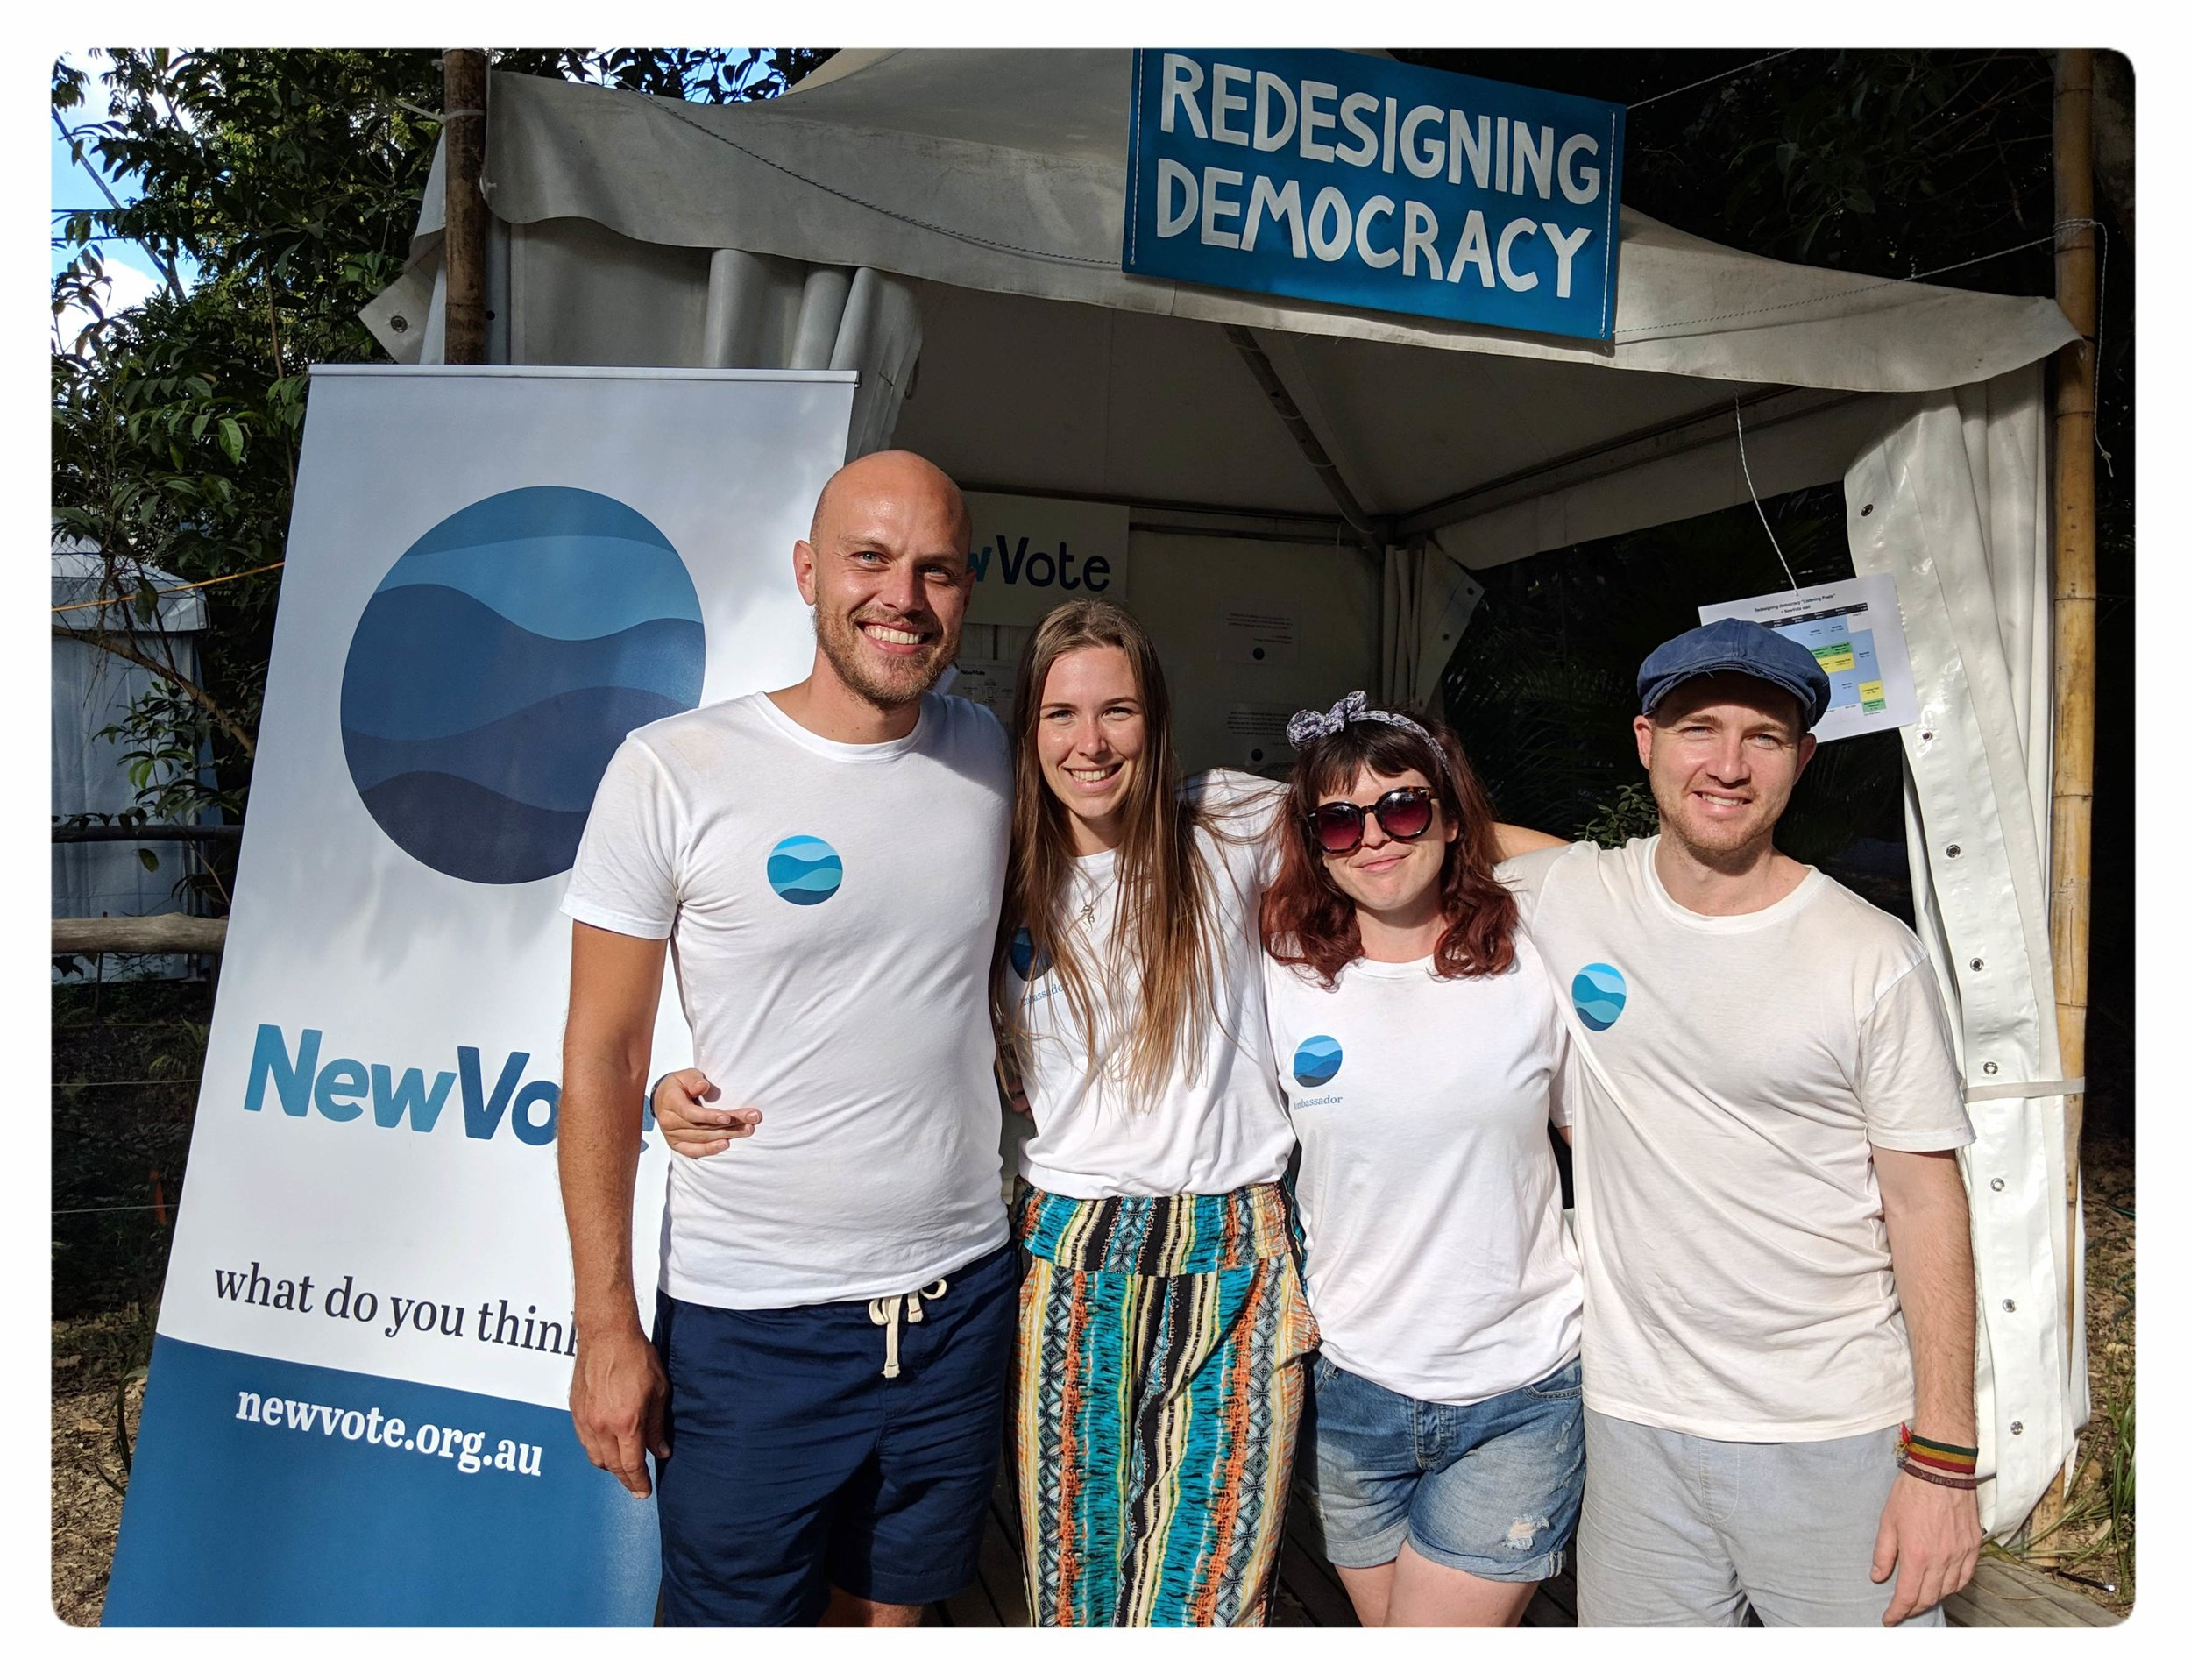 NewVote team members at the Woodford Folk Festival stall in Dec/Jan 2018/19.  Left to Right: Dion McCurdy, Holly Pearce, Lailah Sinclair and Tom Wensley